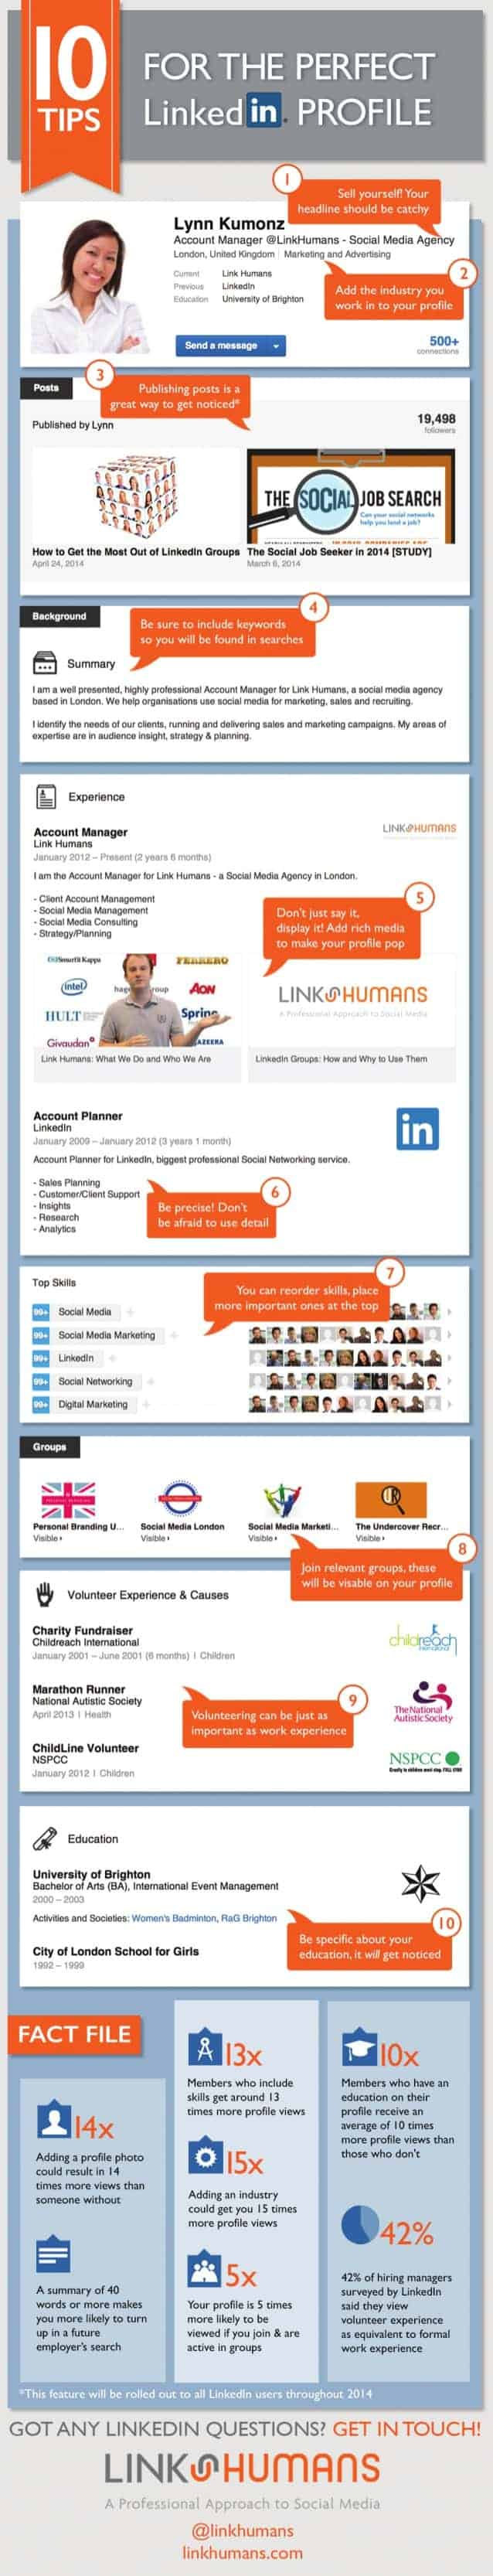 tips for perfect linkedin profile